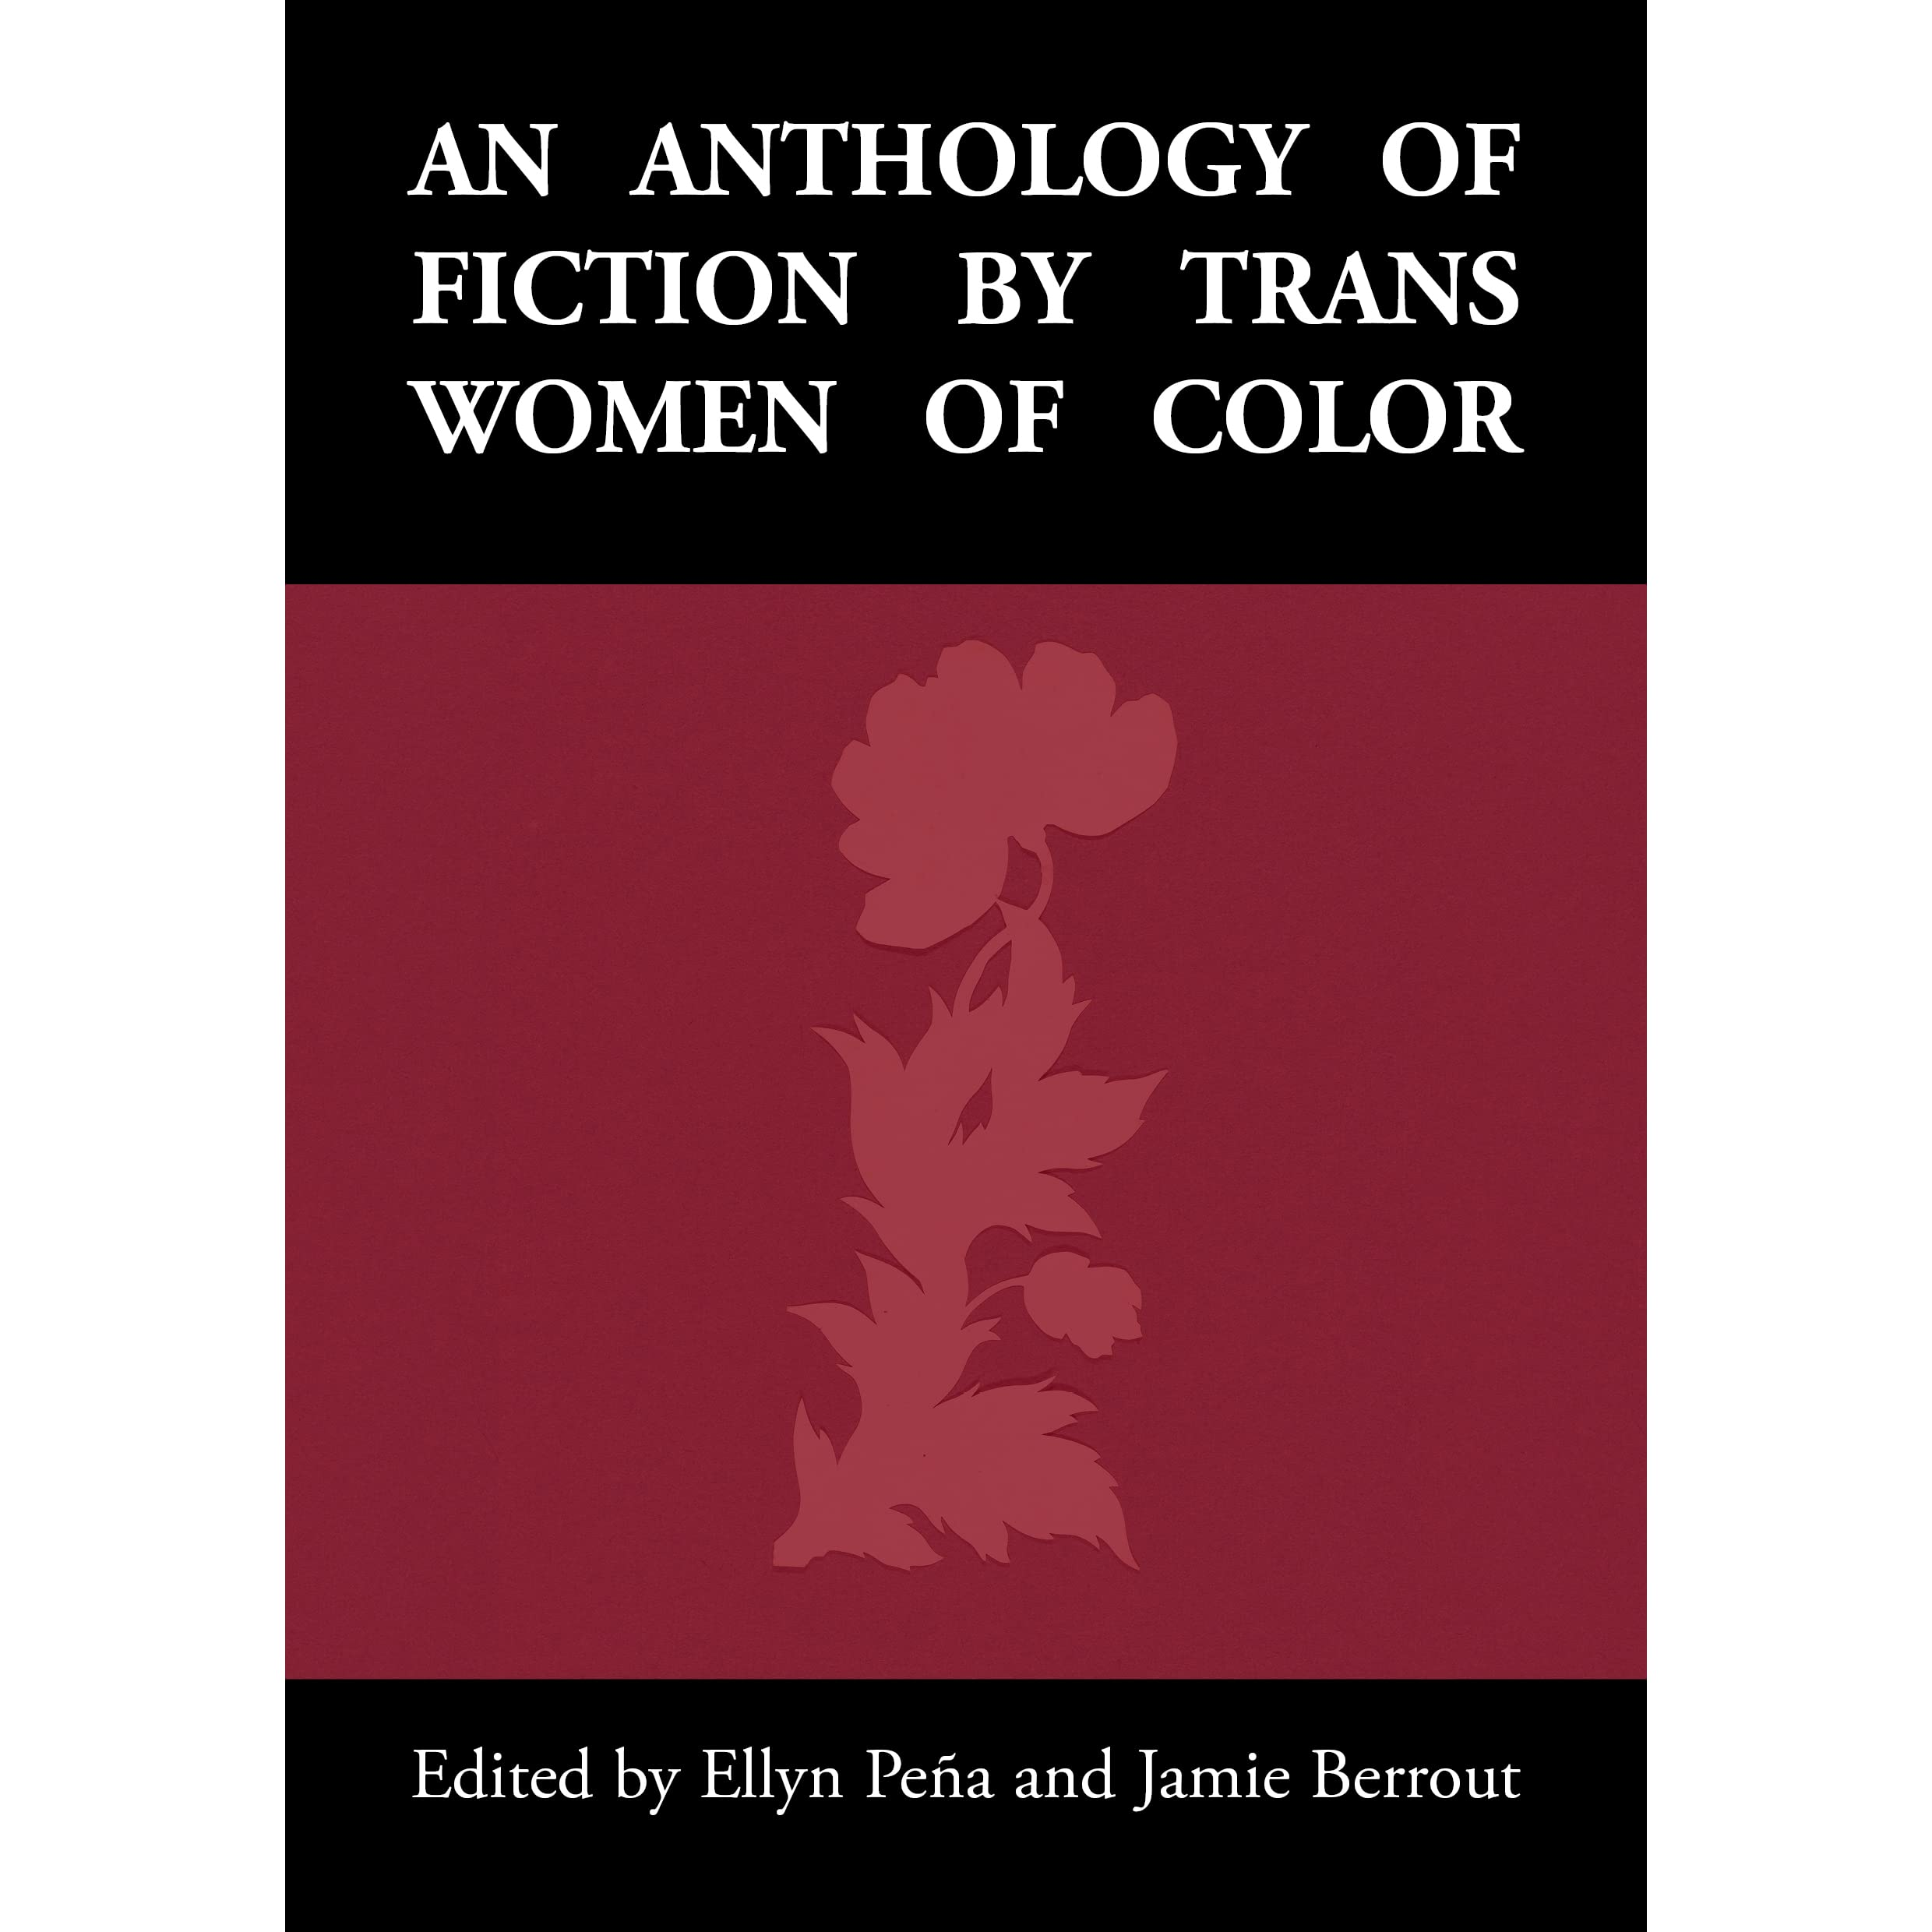 Literature Fiction: An Anthology Of Fiction By Trans Women Of Color By Ellyn